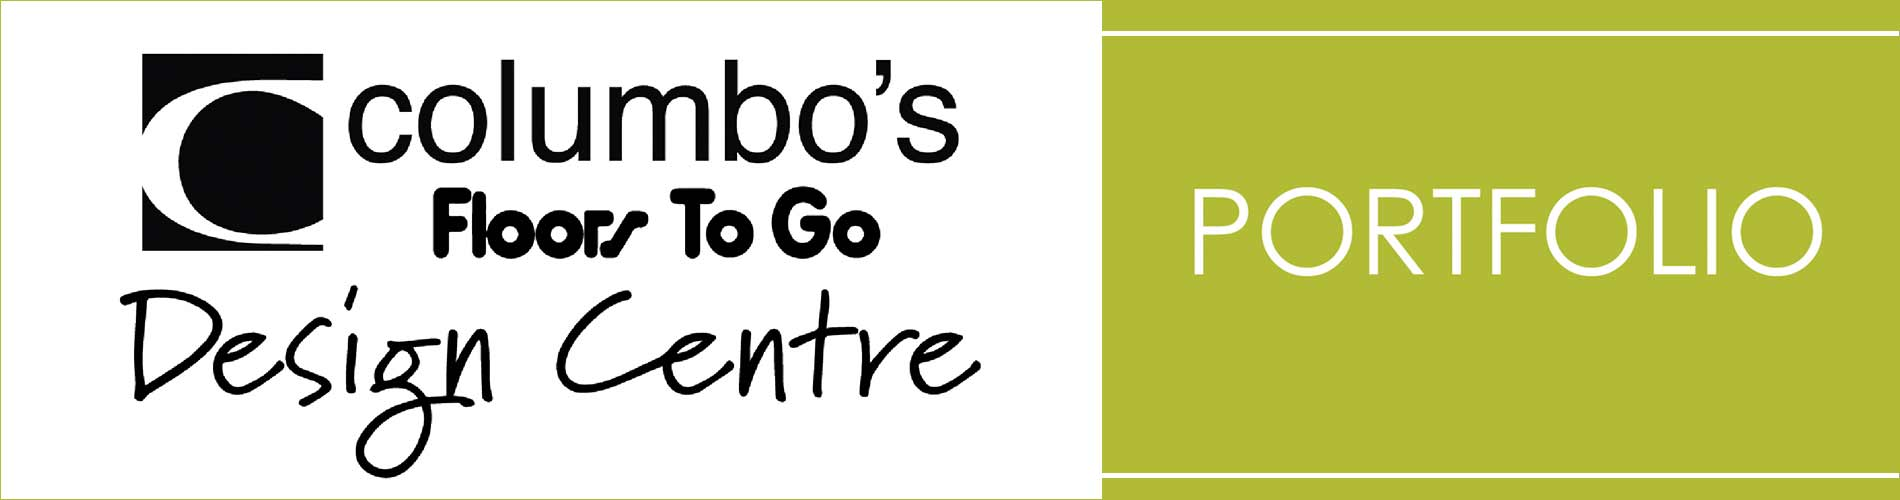 Please come check out our Portfolio here at Columbo's Floors To Go Design Centre.